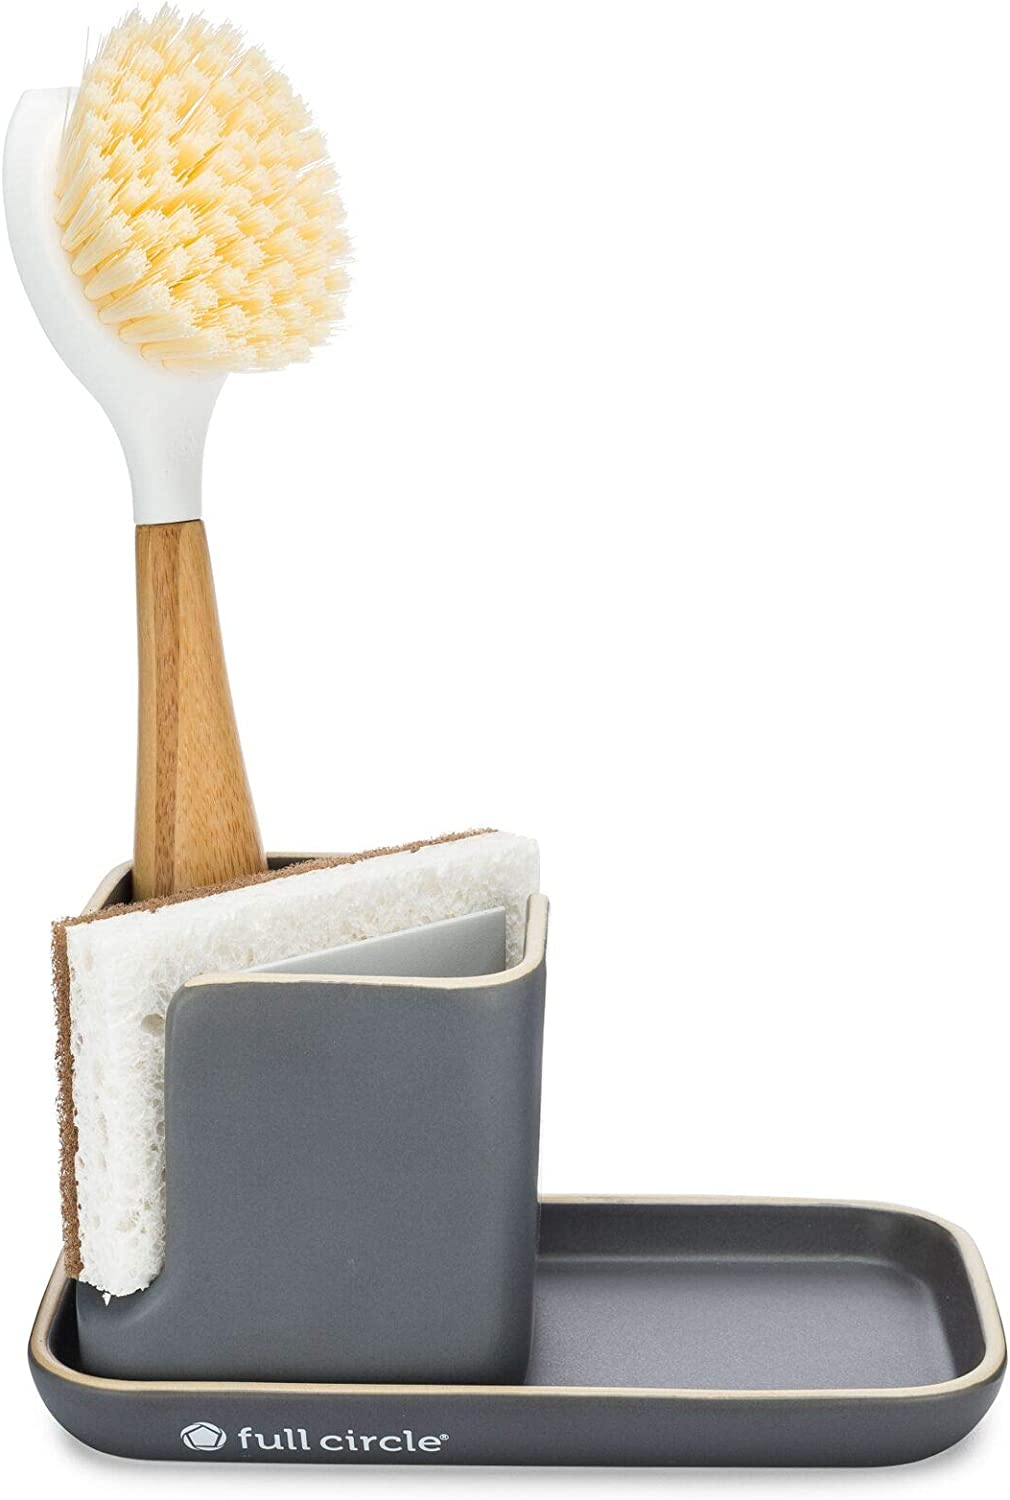 Full Circle Kitchen Sink Set - Ceramic Organizer with Be Good Dish Brush and In a Nutshell Scrubbing Sponges